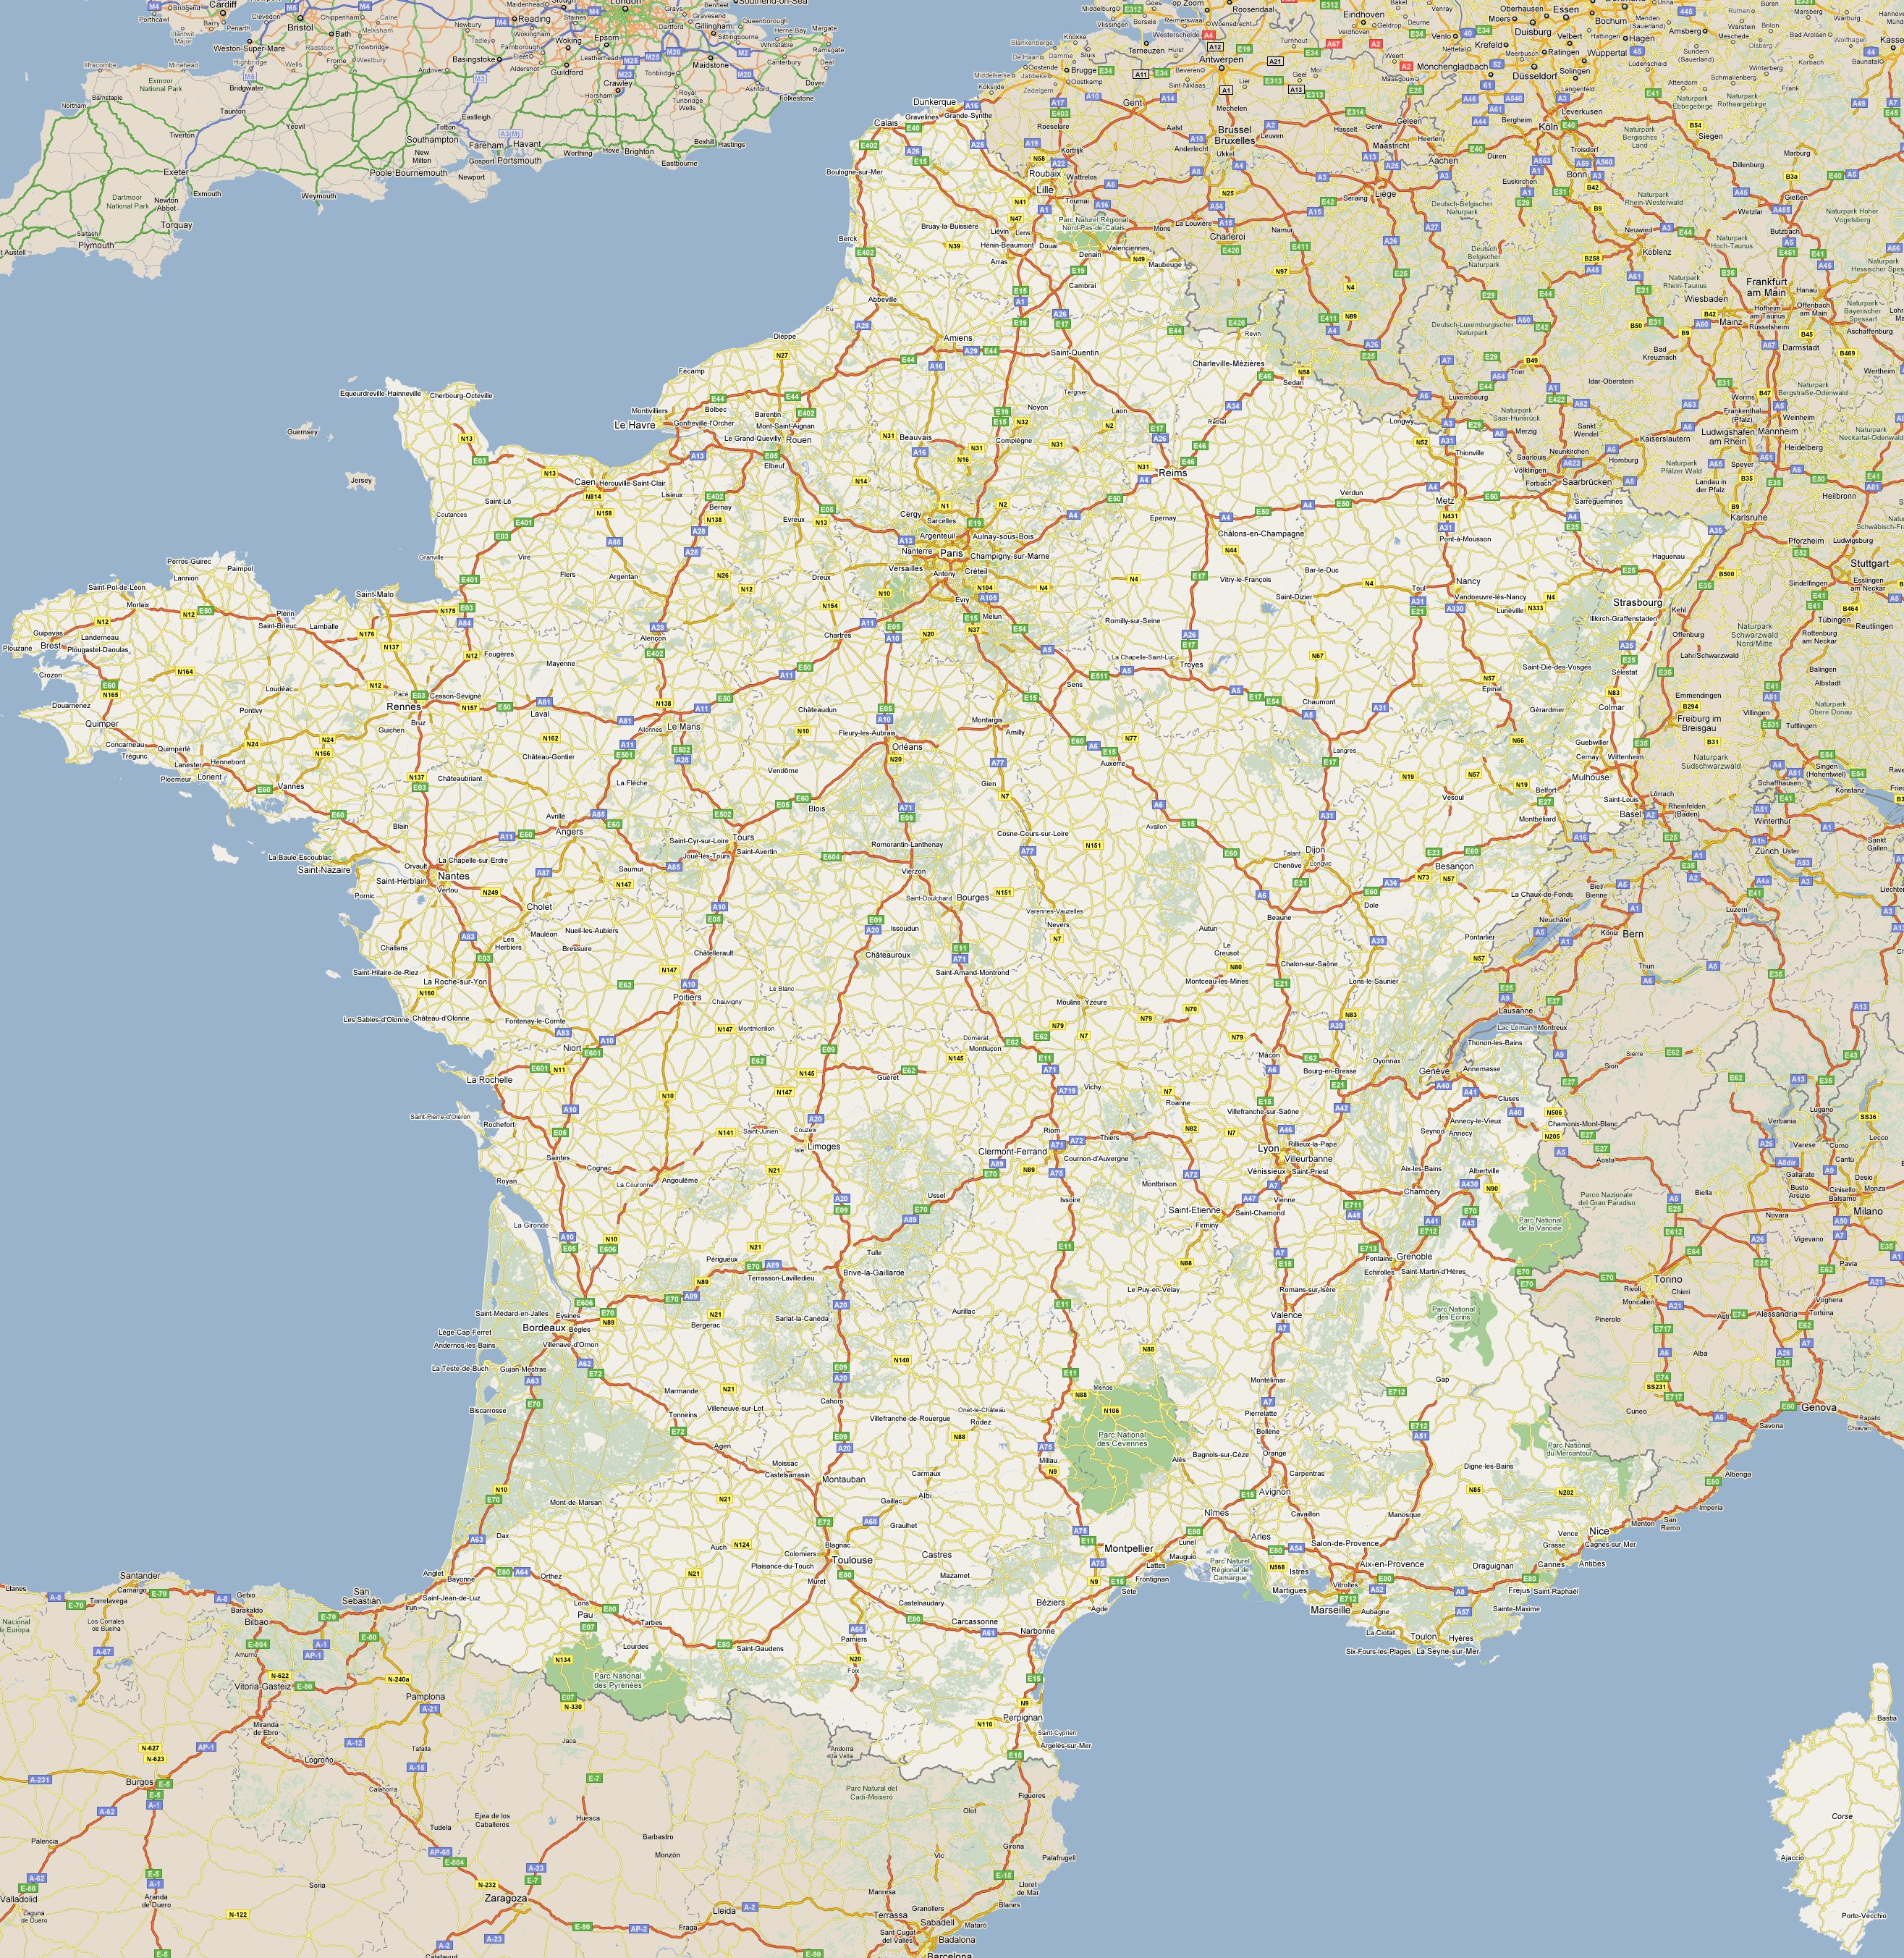 Footiemapcom France 20142015 Map of Top Tier French Football